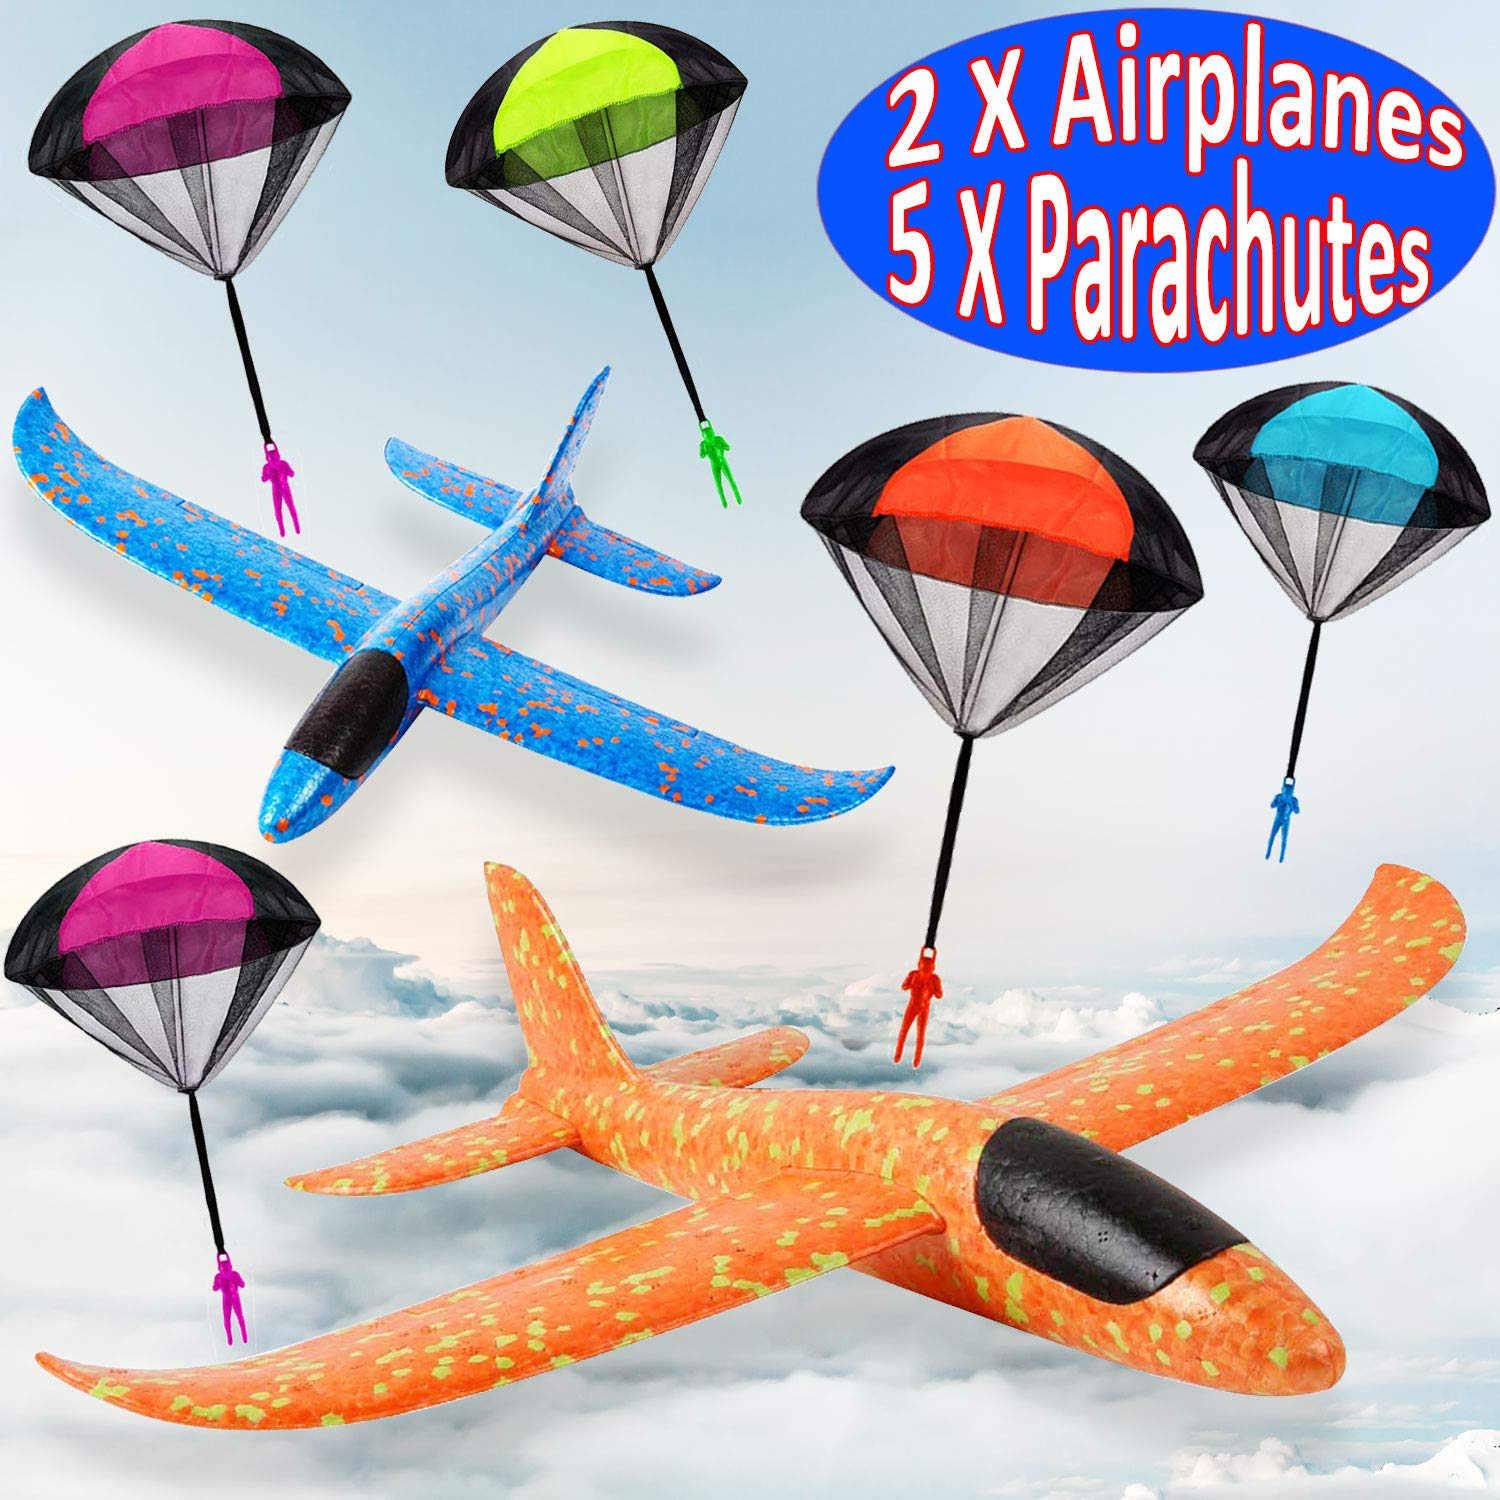 7 Pack Toy Airplane Glider for Kids, 2P 13.5'' Inch Throwing Foam Plane Kit Aircraft Jet+5P Toy Parachute Tangle Free Throwing, Outdoor Sports Flying Toys for Boys Girls Toddlers Teens Birthday Gift by iGeeKid